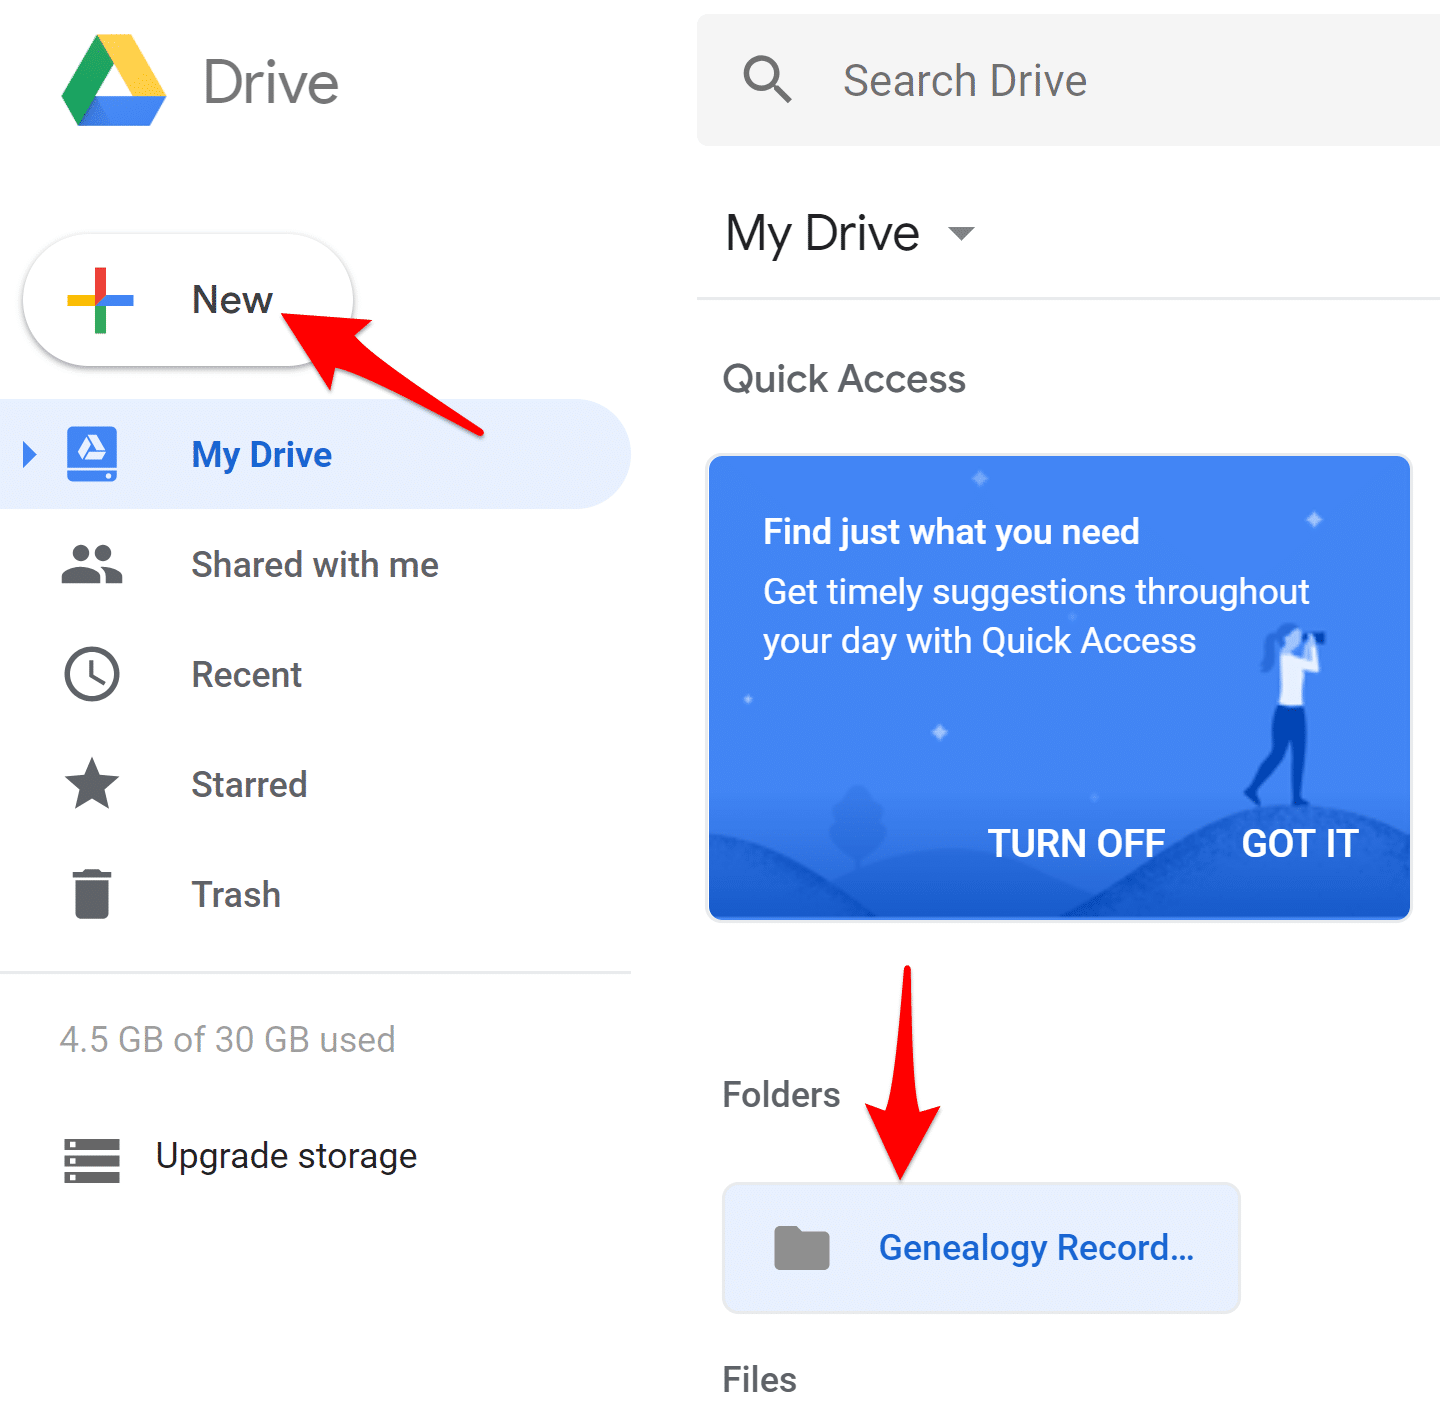 Create New Folder for Genealogy Files on Google Drive